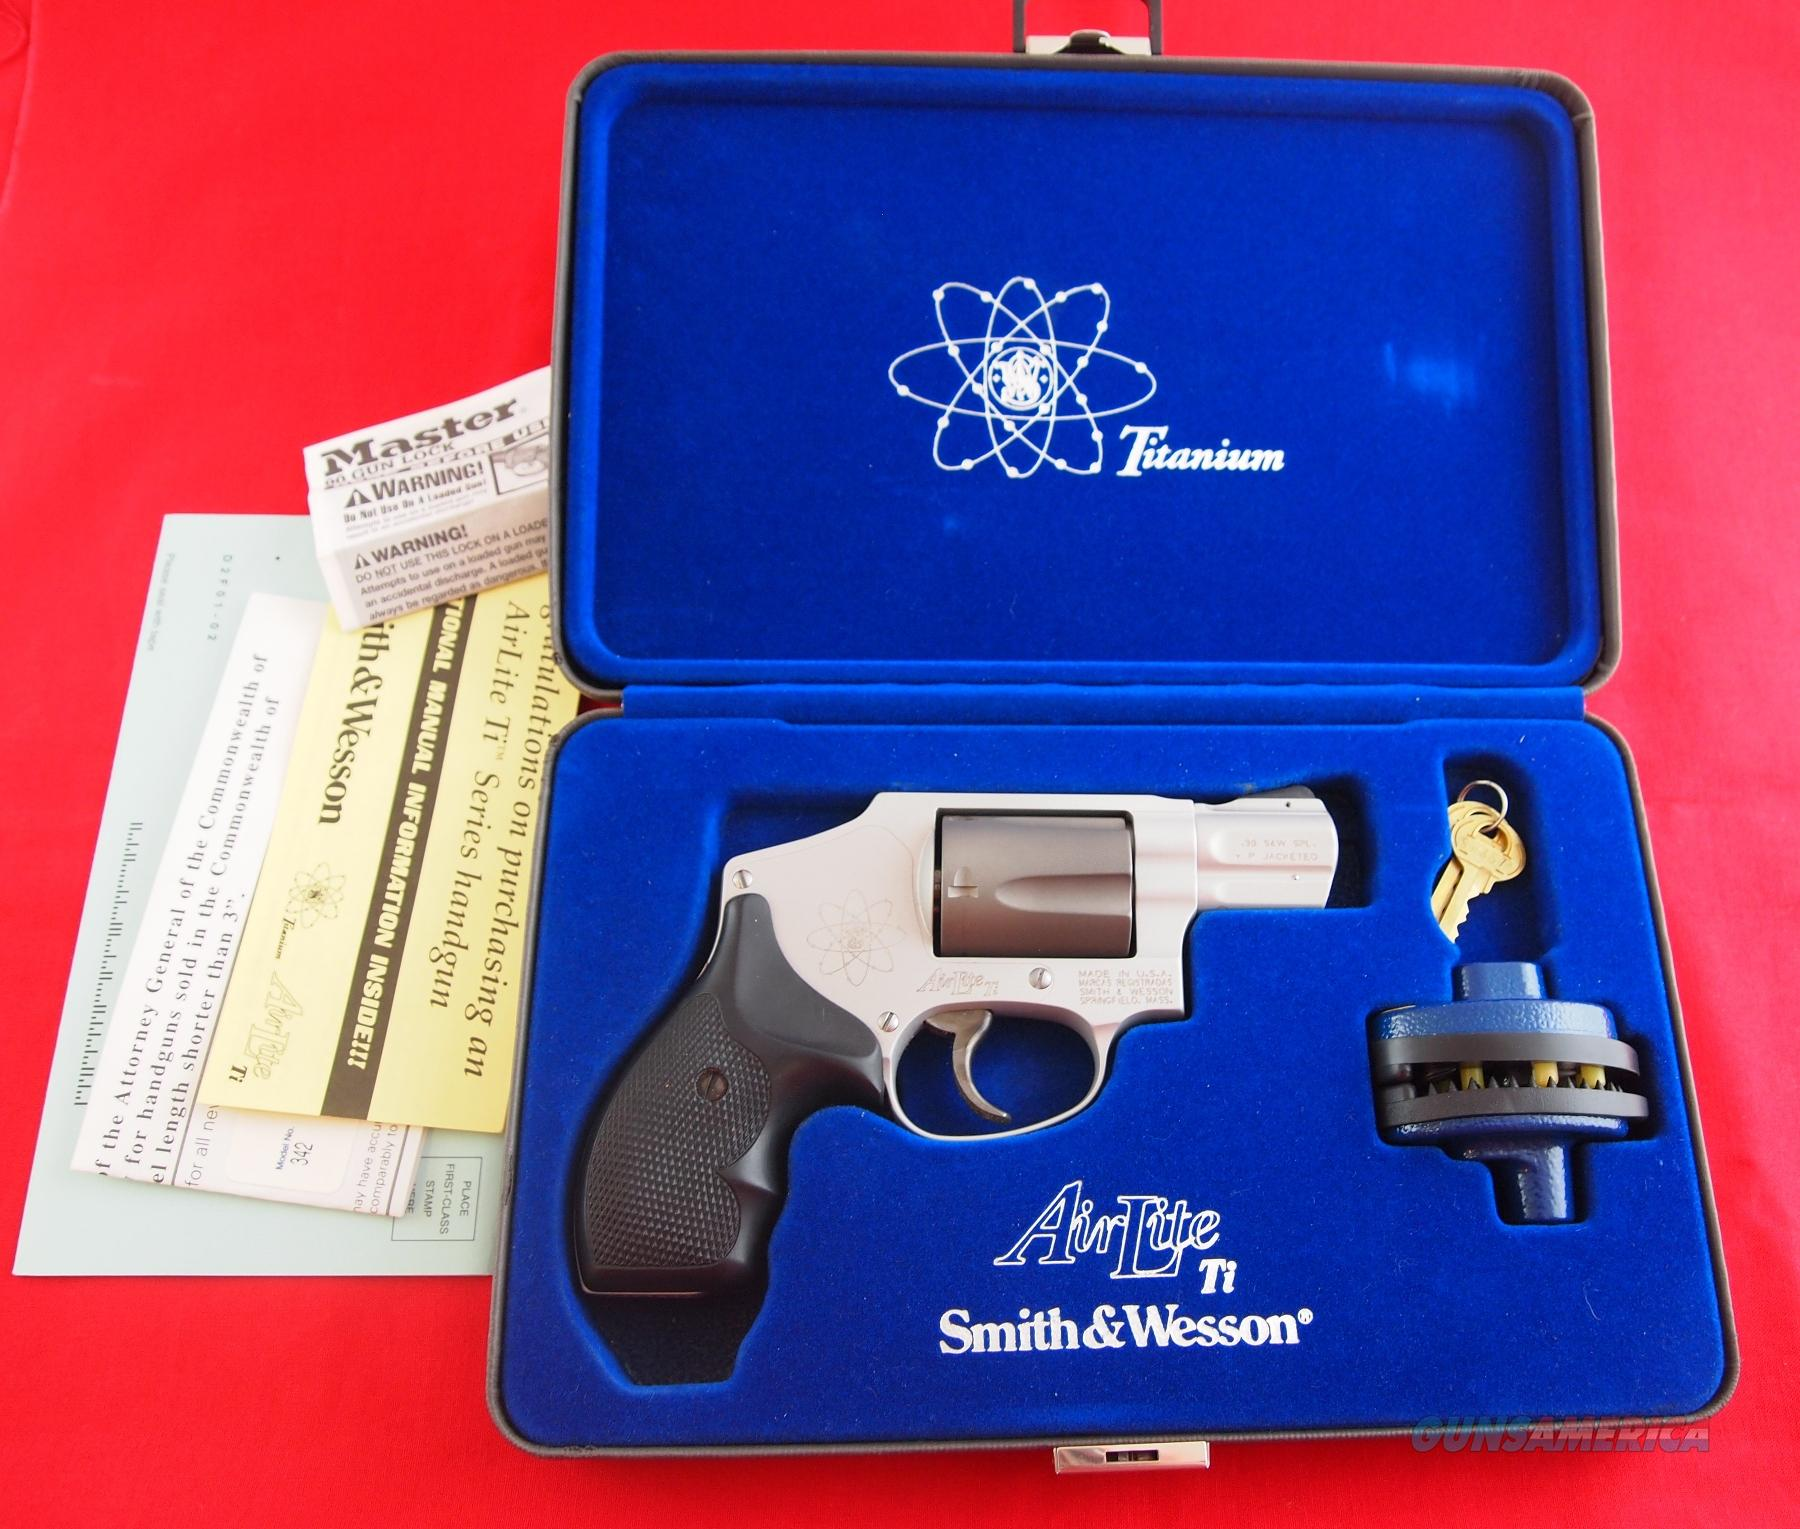 Smith & Wesson 342 Airlight TI .38 Special +P  Guns > Pistols > Smith & Wesson Revolvers > Pocket Pistols